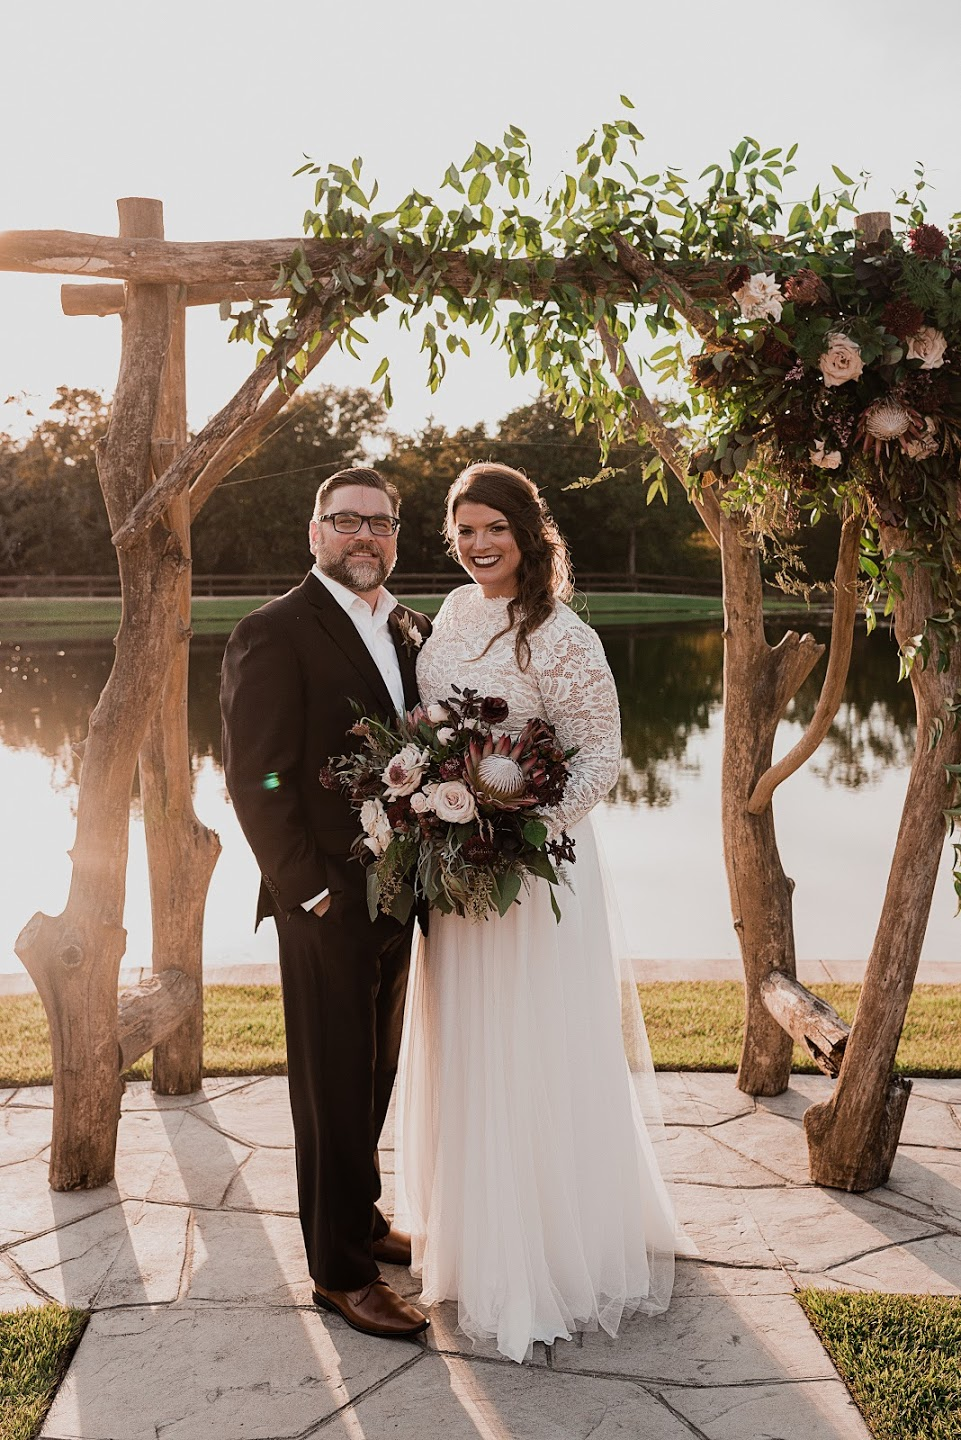 "Kelly + Tyler - ""Kim exceeded my expectations from beginning to end. Every meeting that we had went into detail about all items that needed to be included in the wedding. She literally made all of my wedding dreams come true. When i walked into the venue on my wedding day, i was blown away. It was so gorgeous and all of the floral work was literally like artwork! The creativity and design exceeded my expectations and i literally had to hold back my happy tears so i didn't mess up my makeup! I highly recommend working with Willow Lane and Kim! If you are wanting someone who can really understand your wedding design requests, she is the perfect choice! Thank you again for making all my wedding dreams a reality!"""